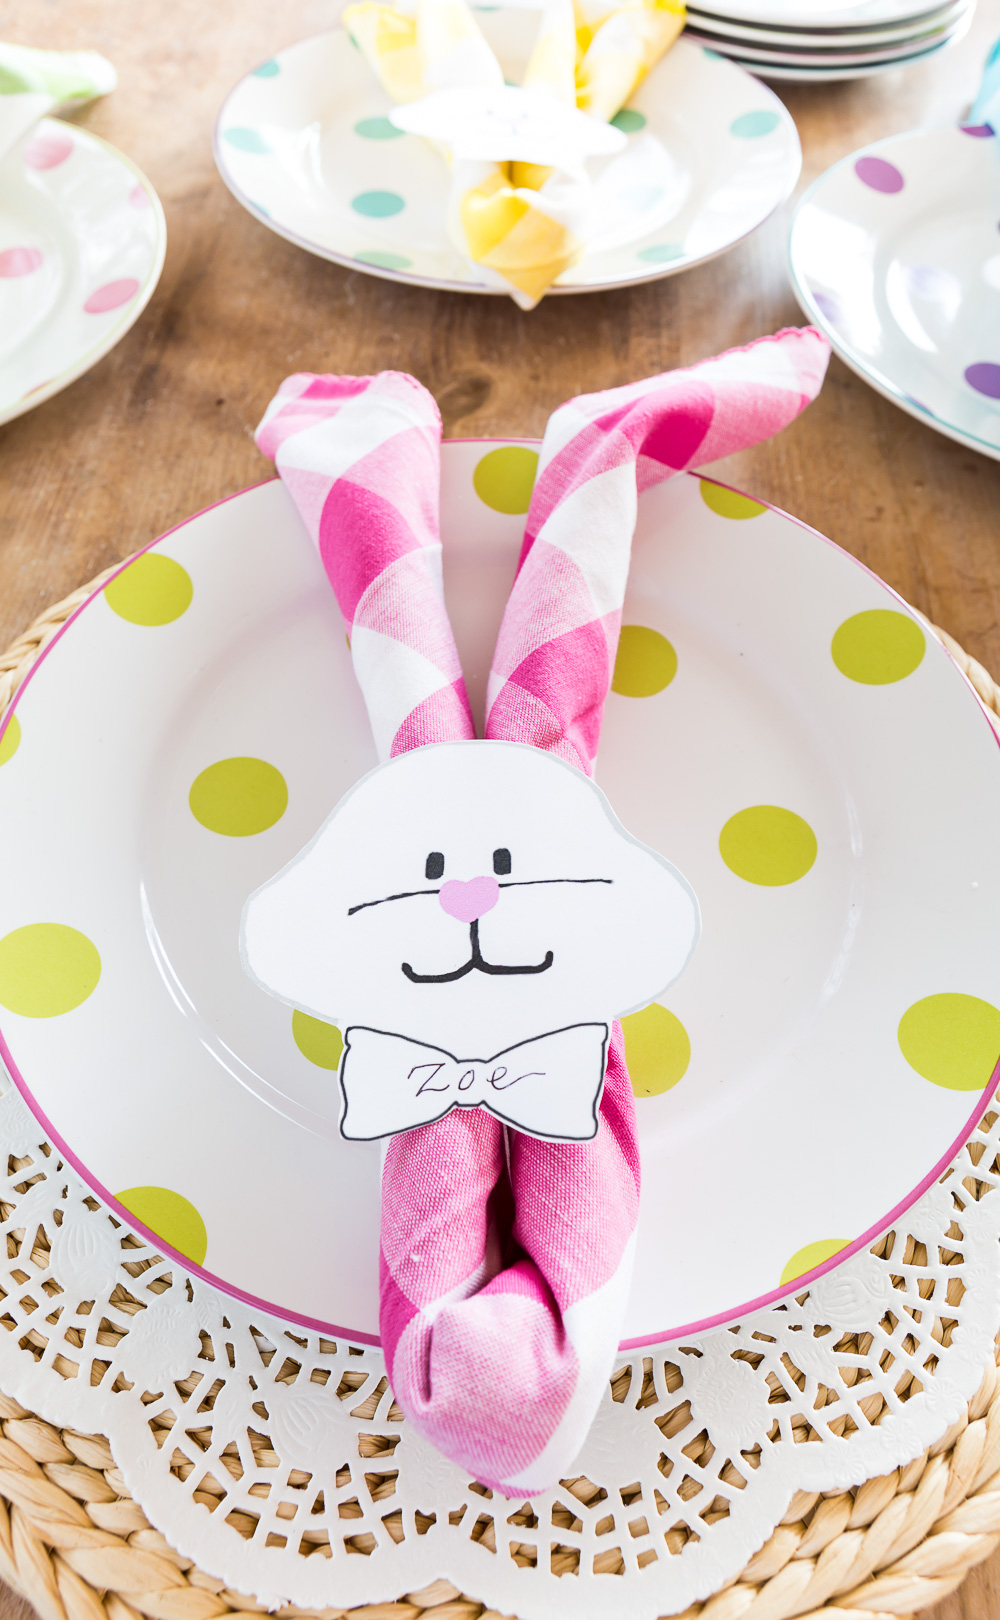 Pastel Pink Buffalo Check Napkin folded to make an Easter bunny napkin holder on a plate.